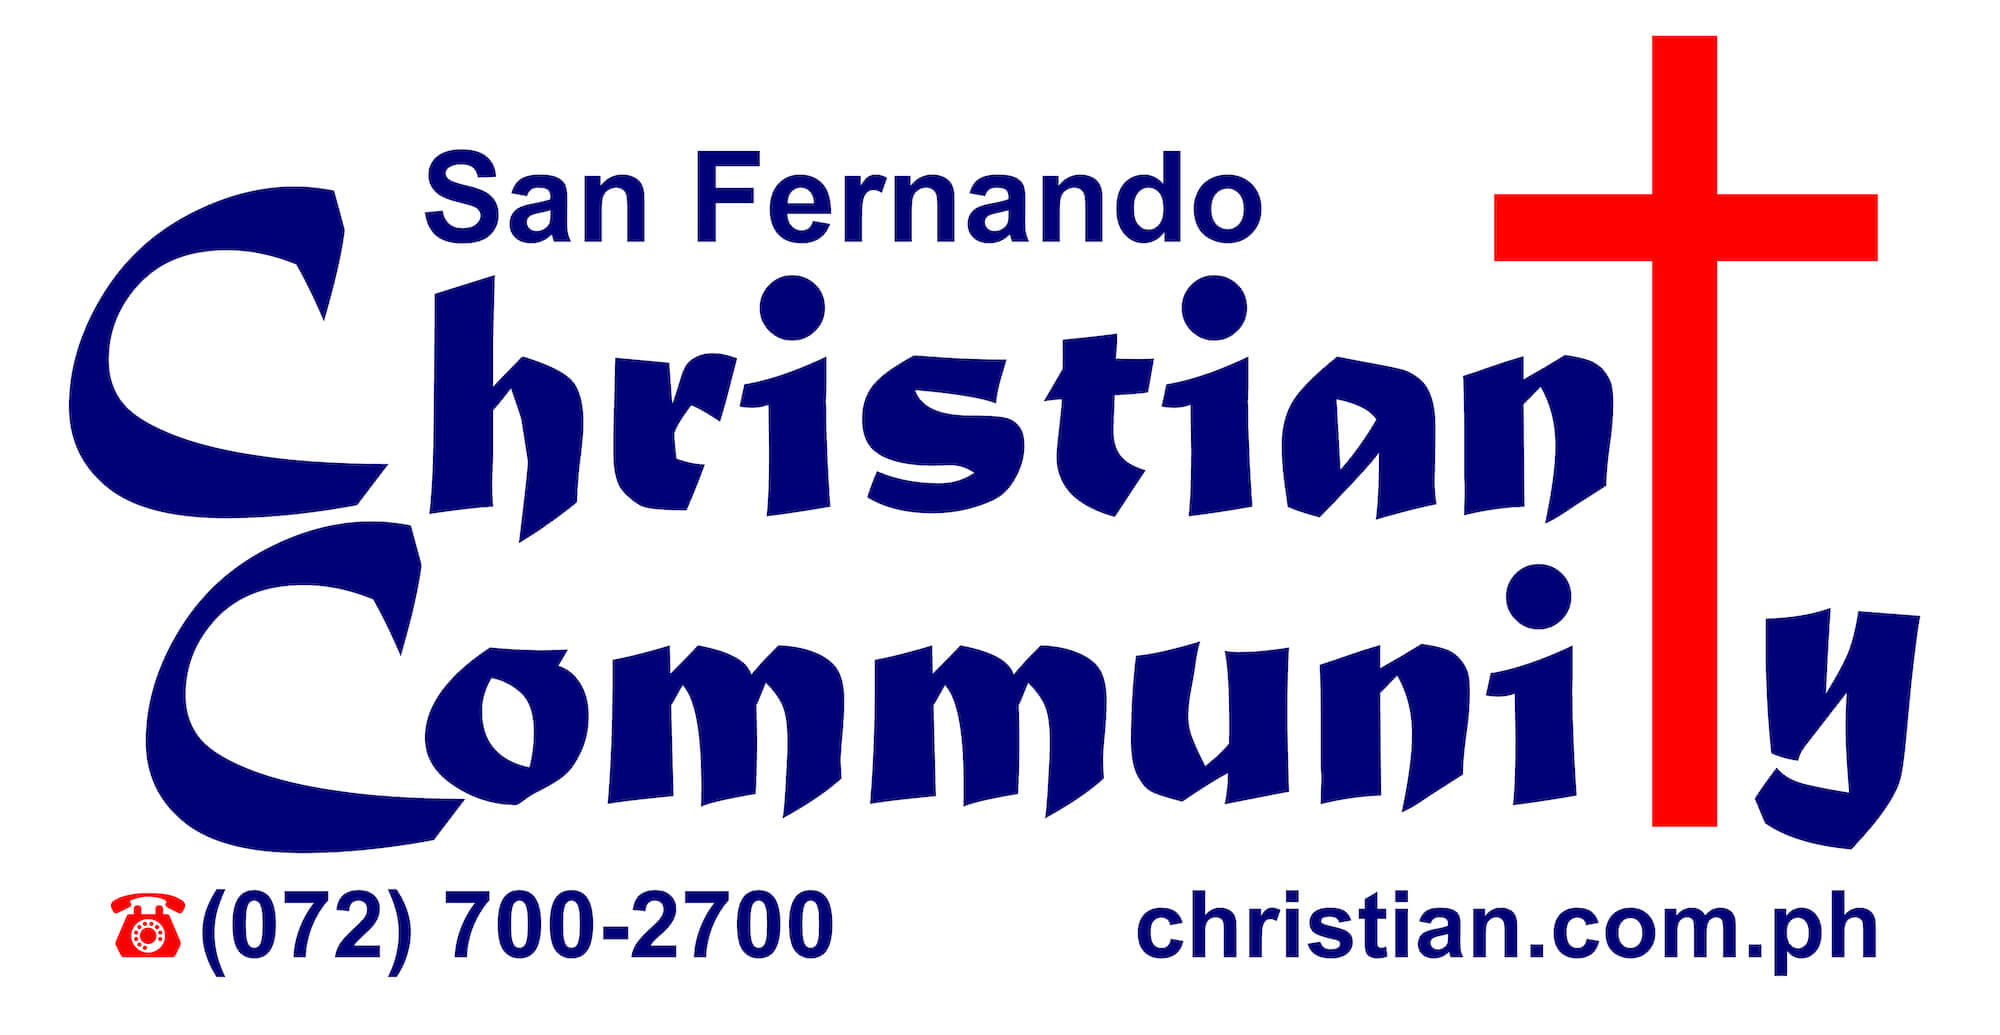 San Fernando Christian Community, a chatbot developer